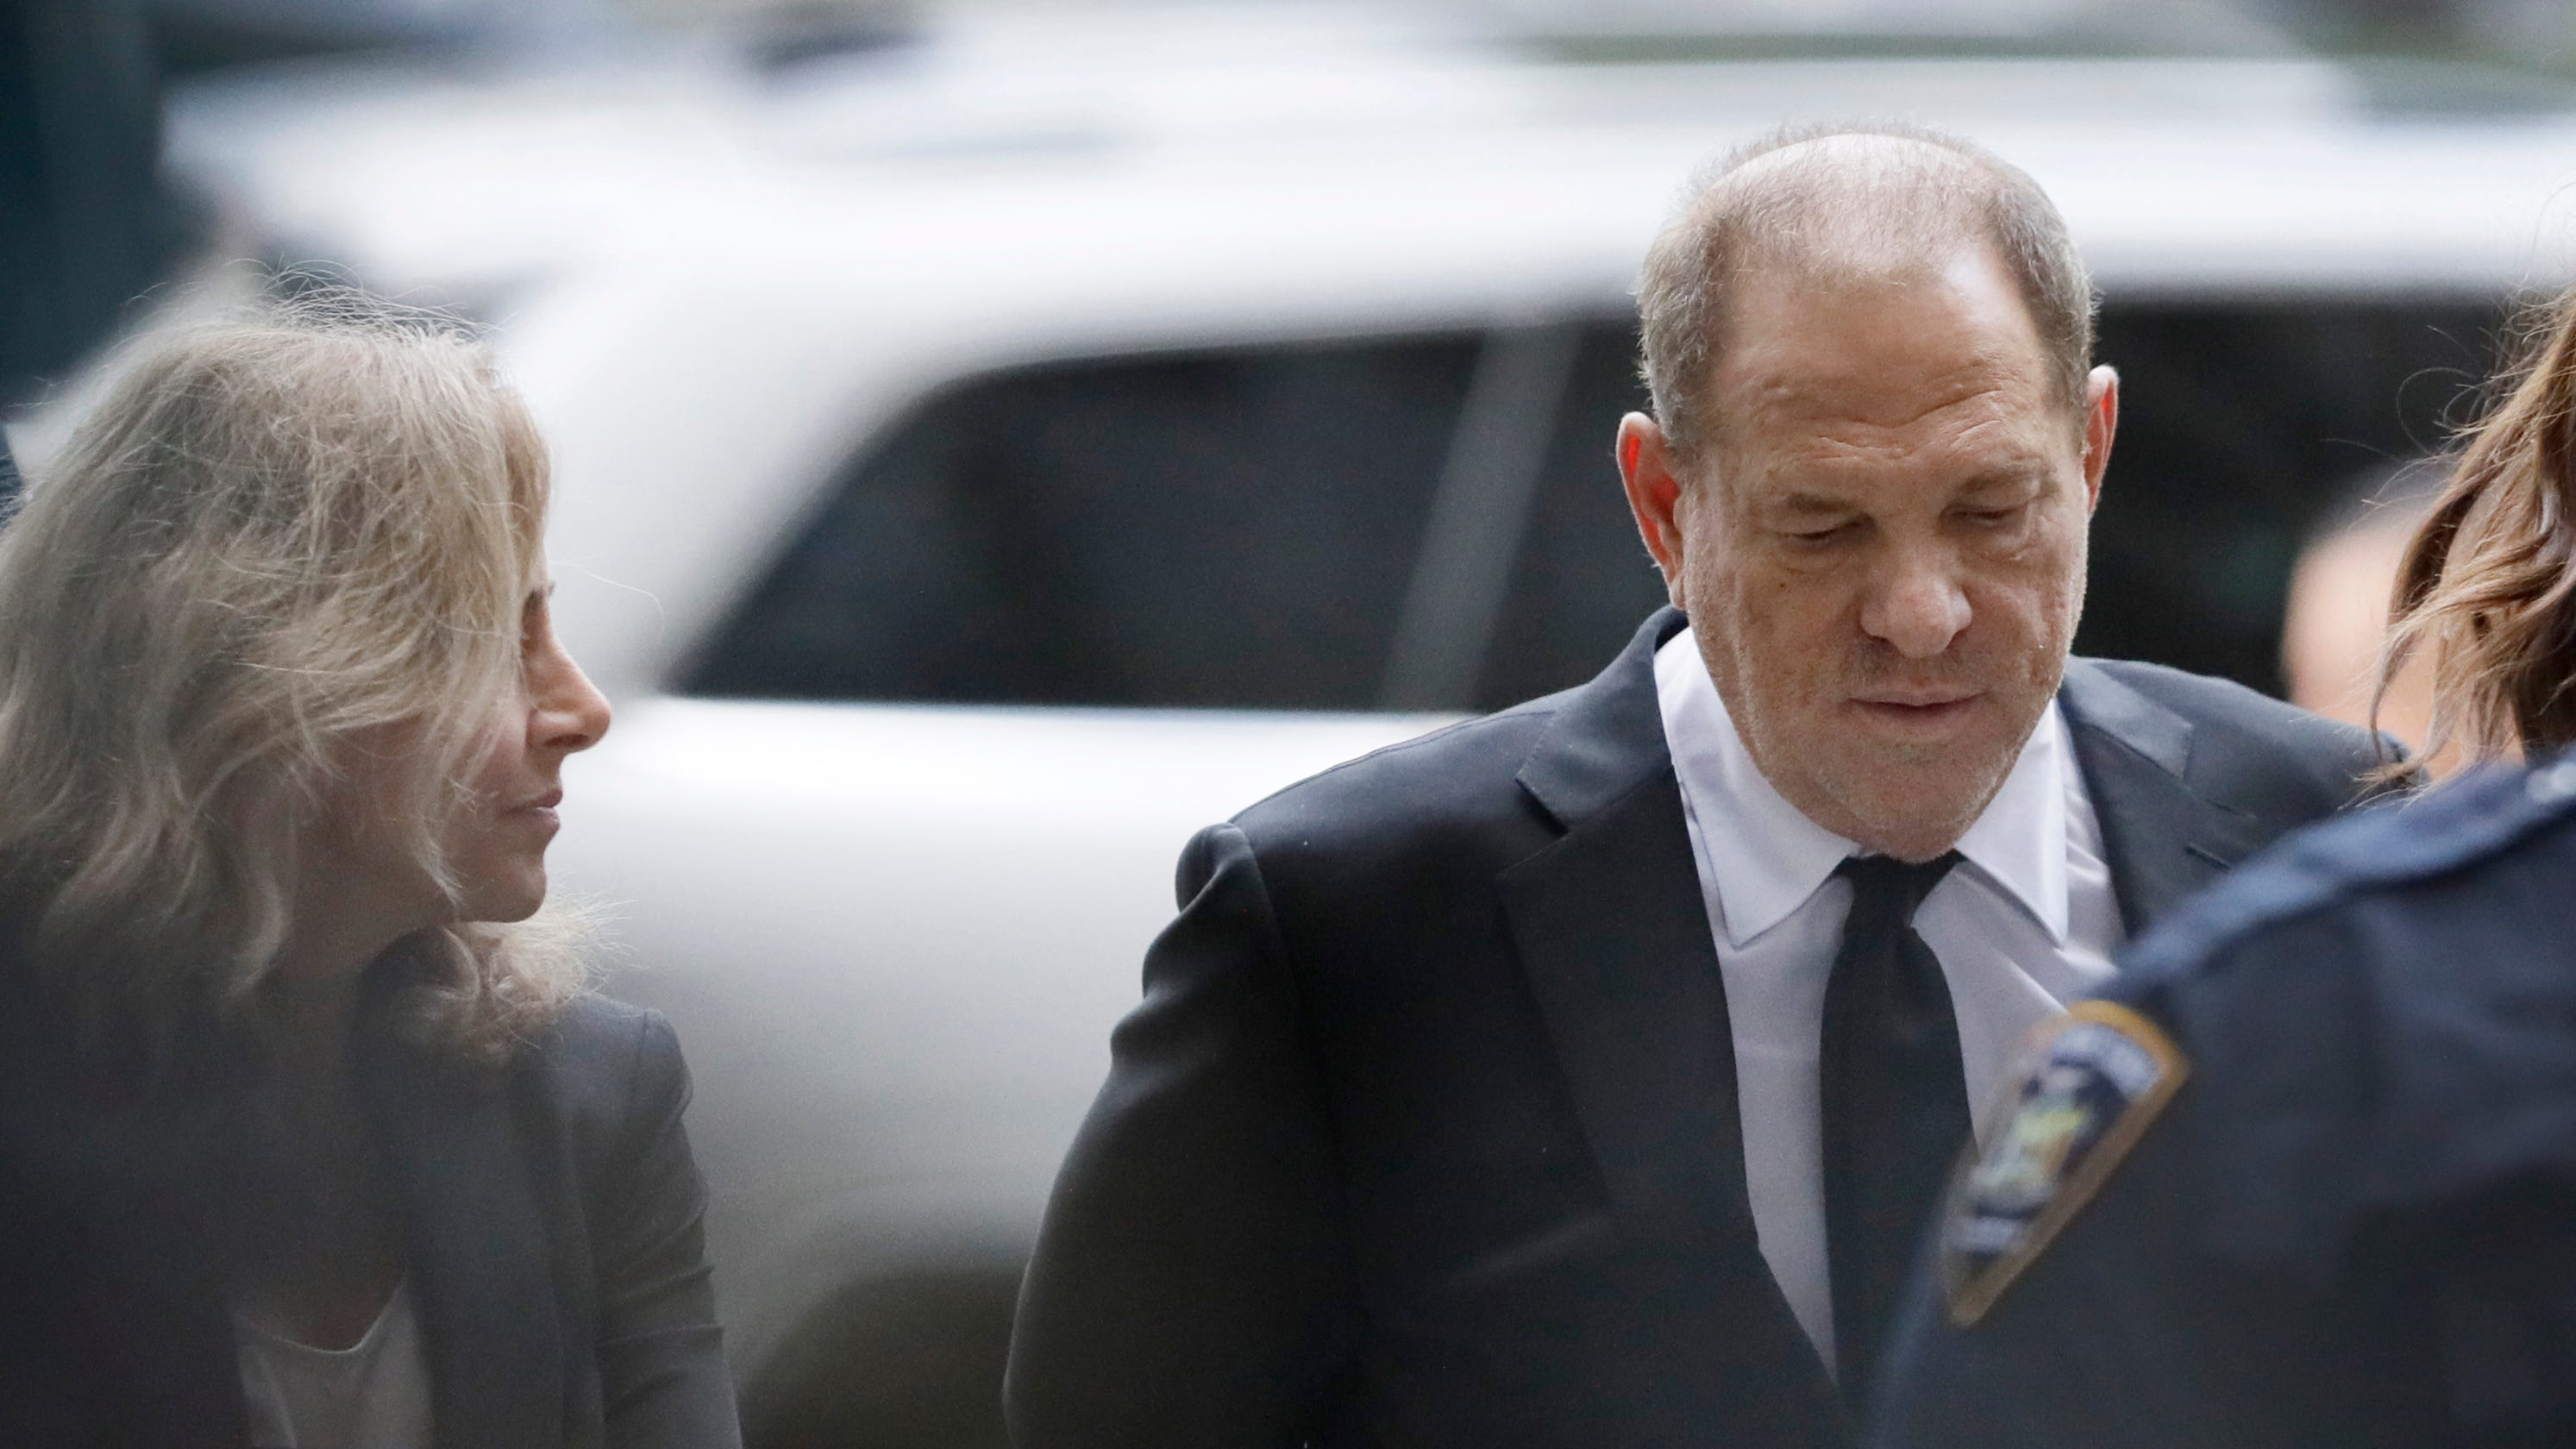 Harvey Weinstein's sex-crimes trial delayed to January; he pleads not guilty at new arraignment